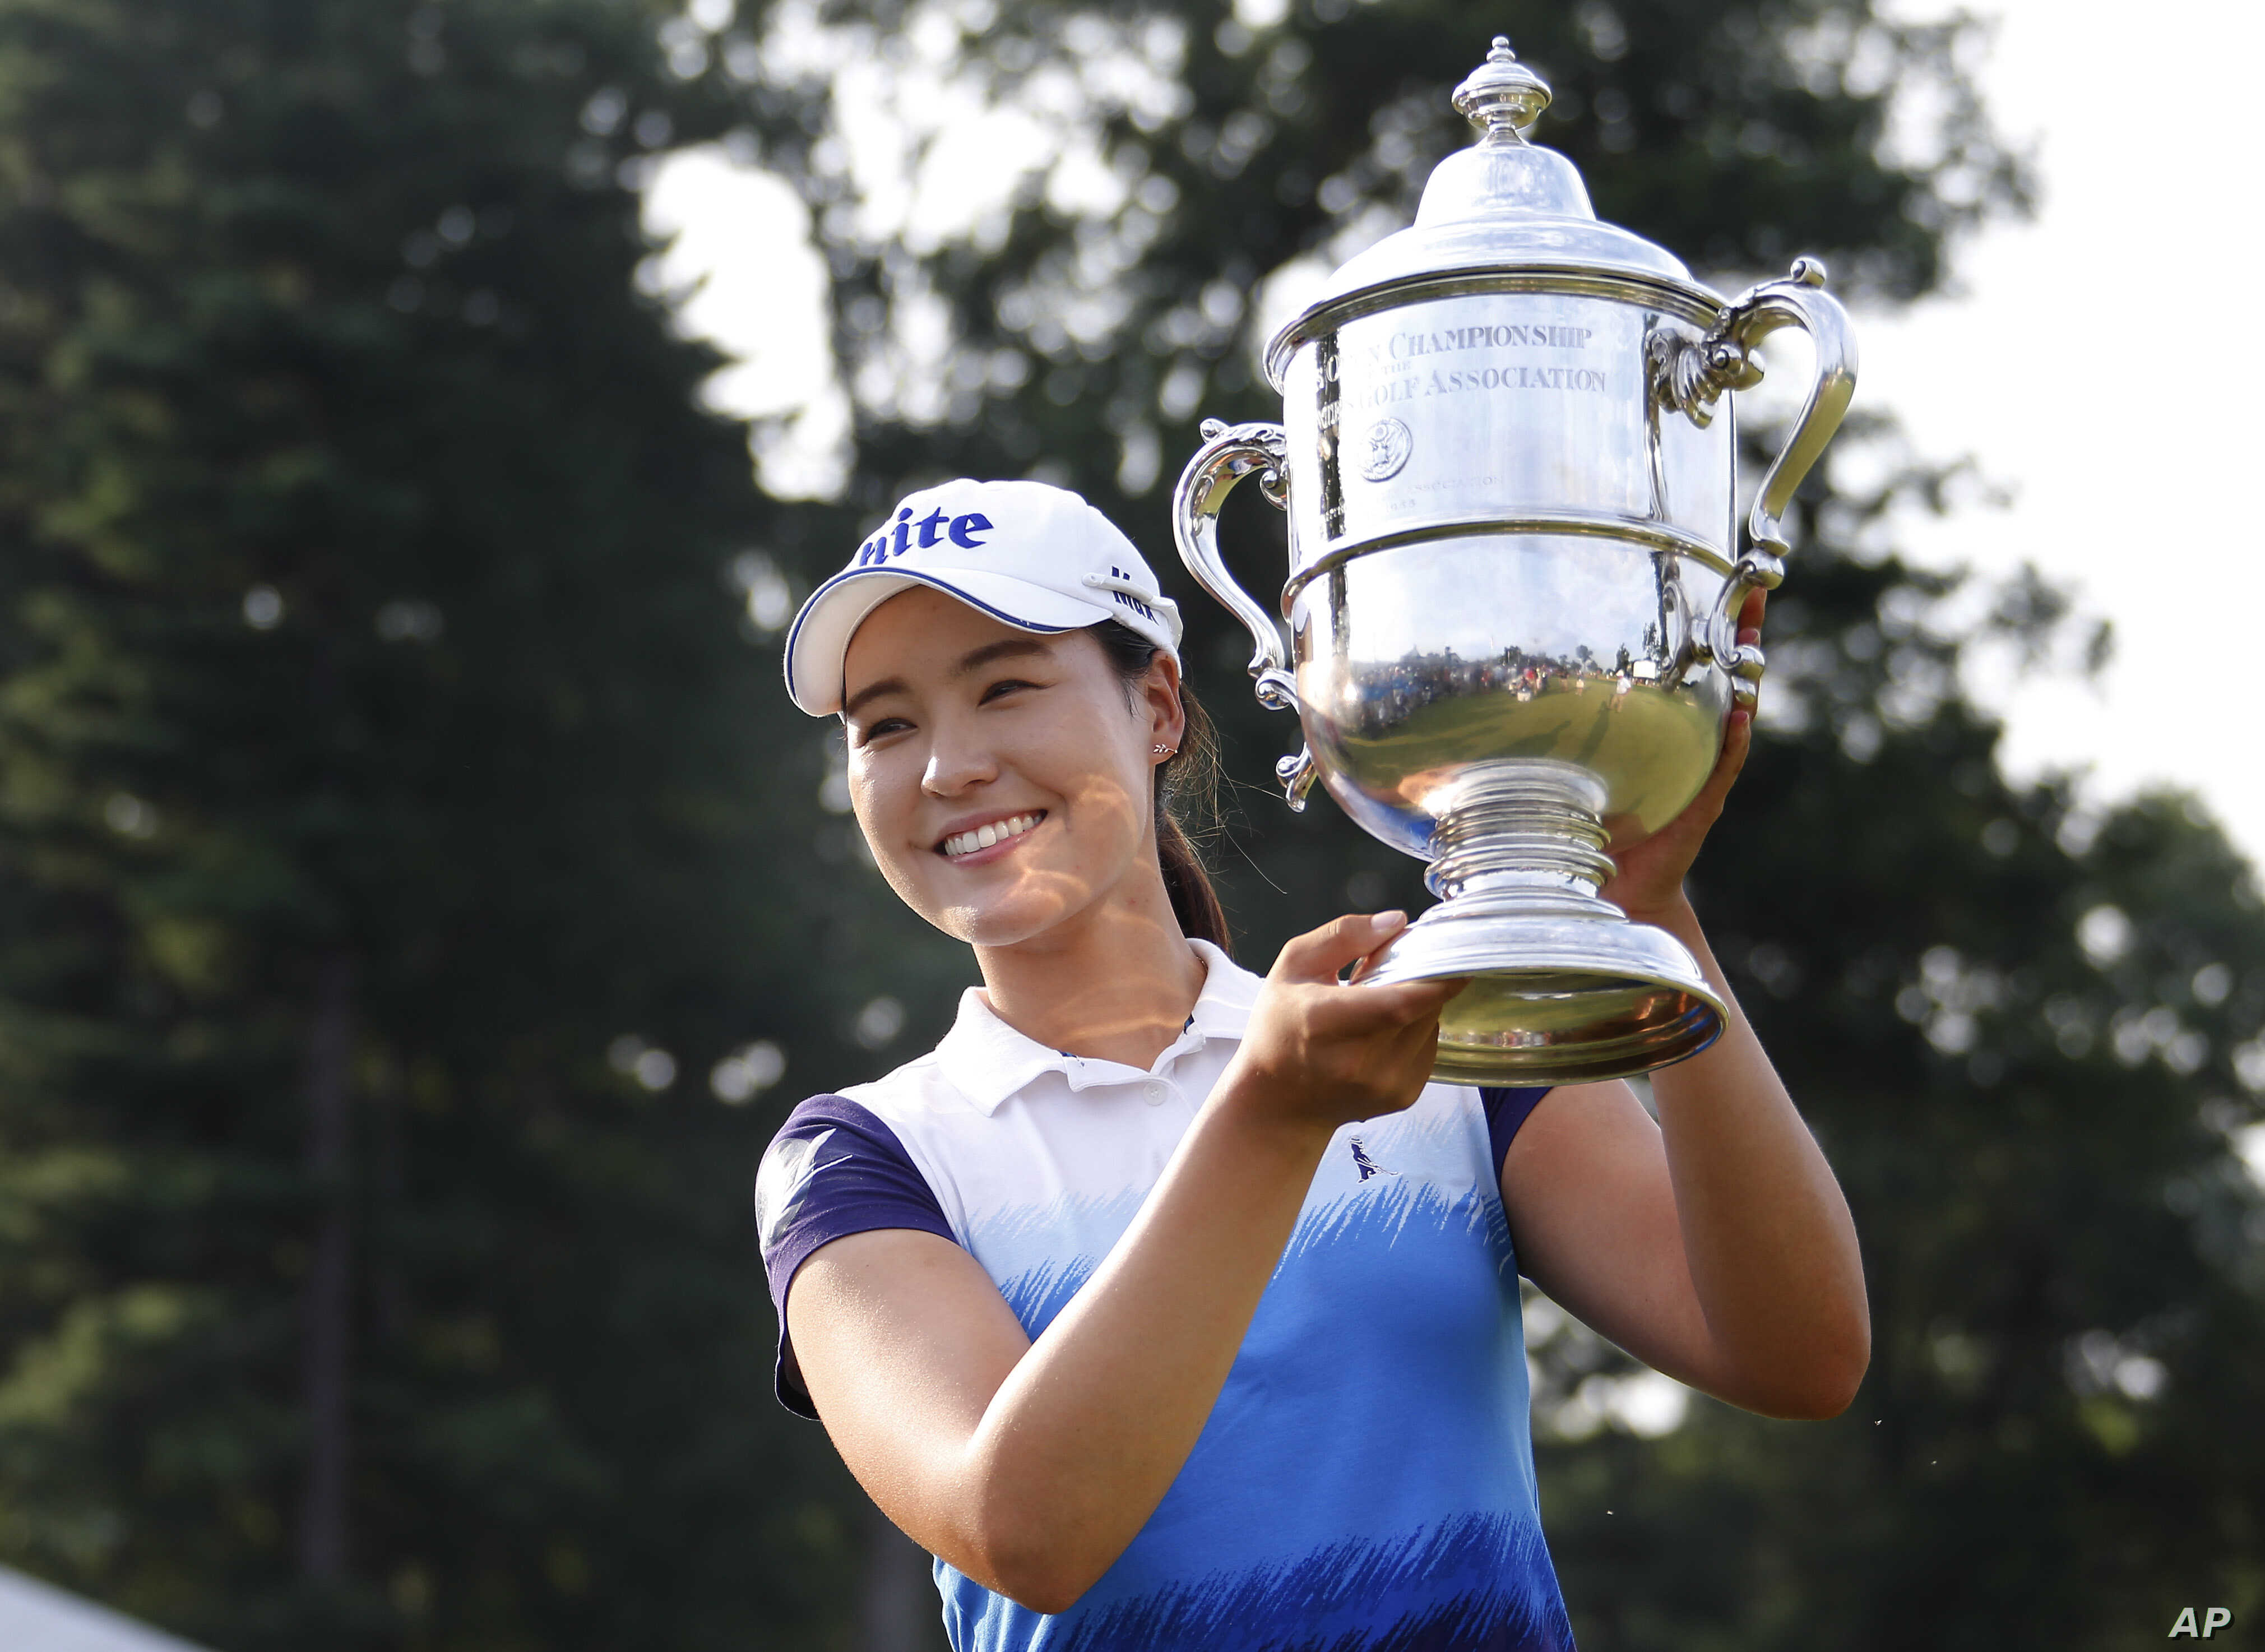 South Korea's In Gee Chun holds up the championship trophy after winning the U.S. Women's Open golf tournament at Lancaster Country Club, July 12, 2015 in Lancaster, Pennsylvania.